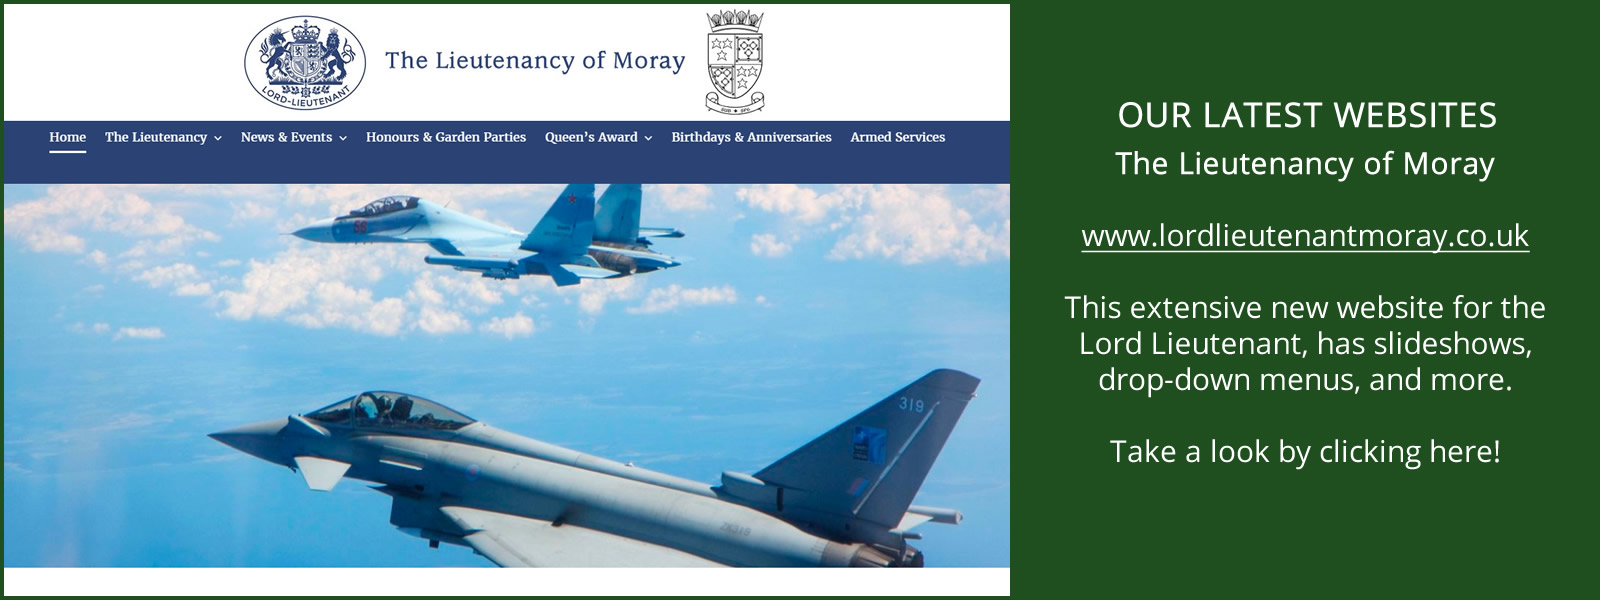 Click Here to Visit The Lieutenancy of Moray